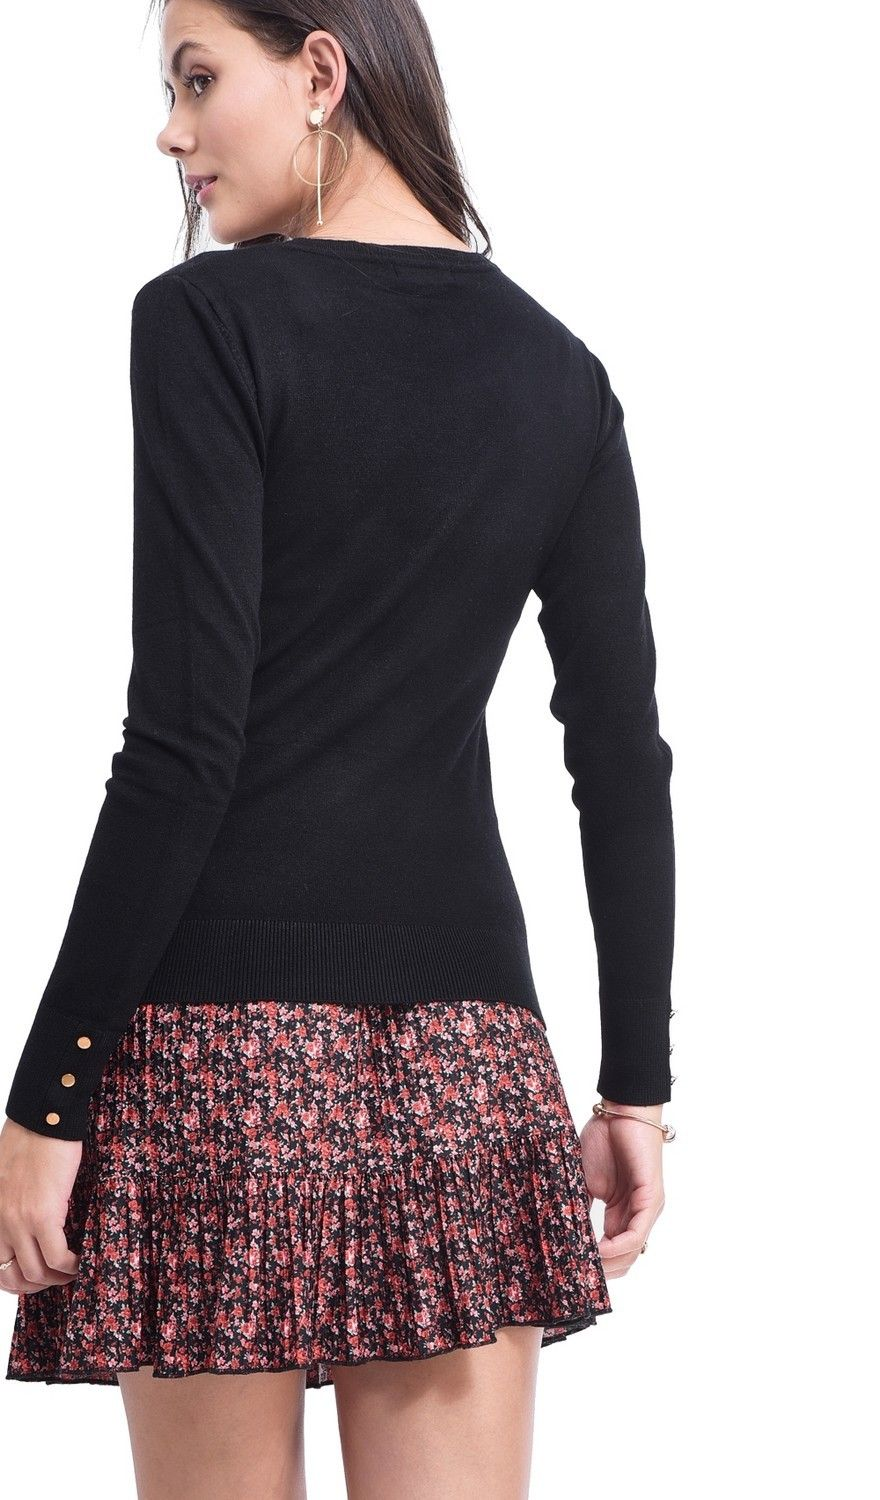 Assuili Round Neck Sweater with Buttoned Sleeves in Black